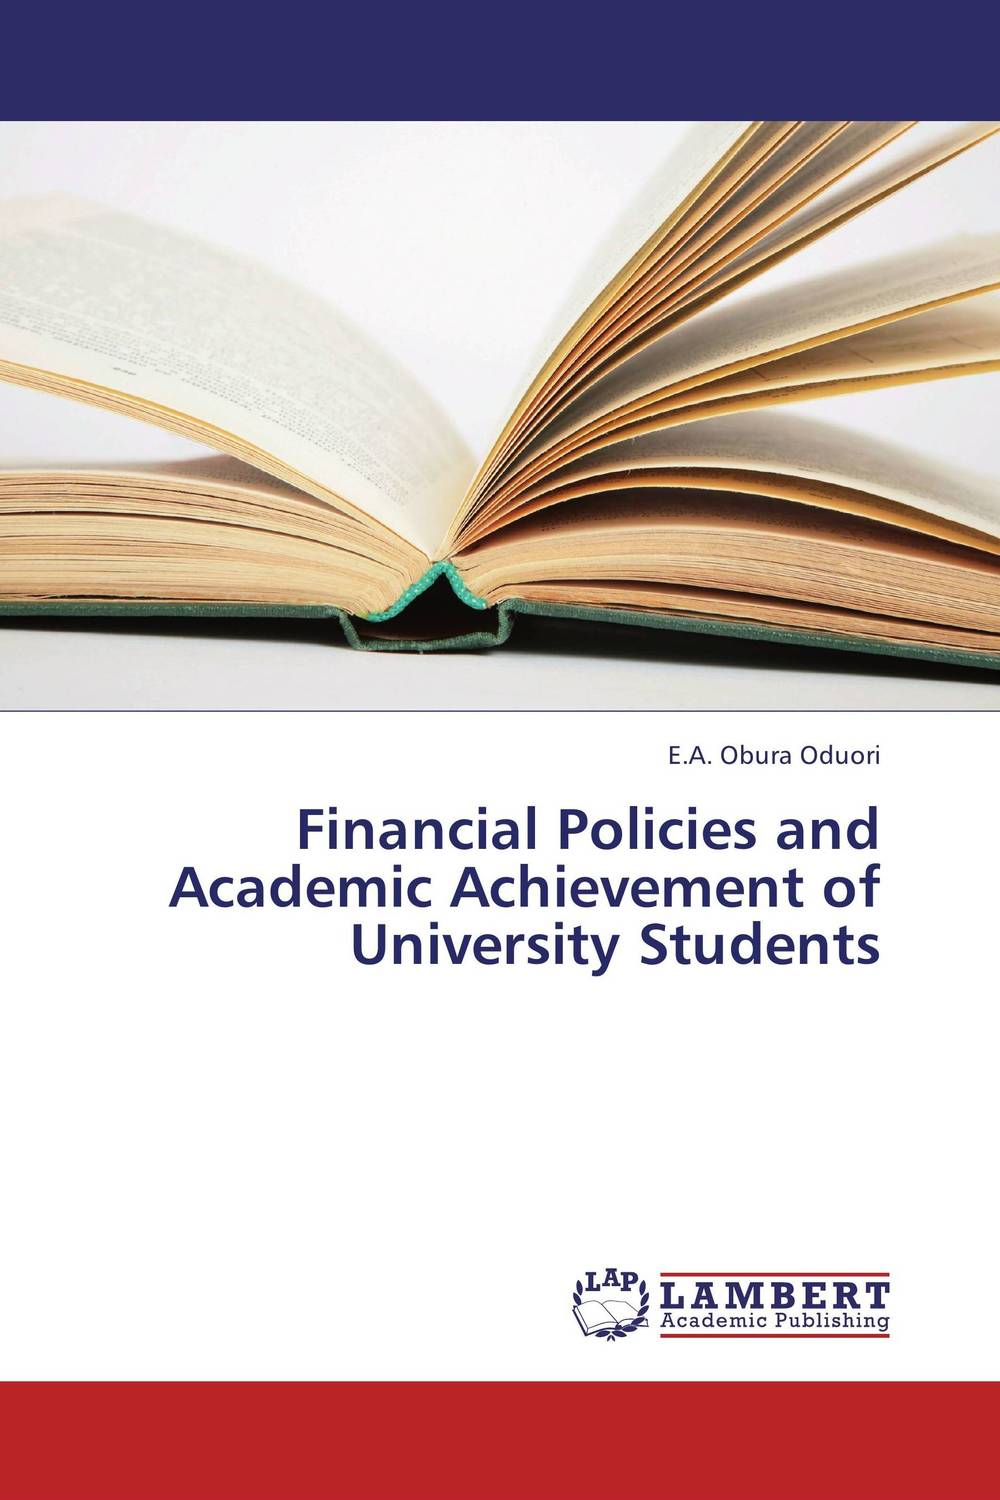 Financial Policies and Academic Achievement of University Students